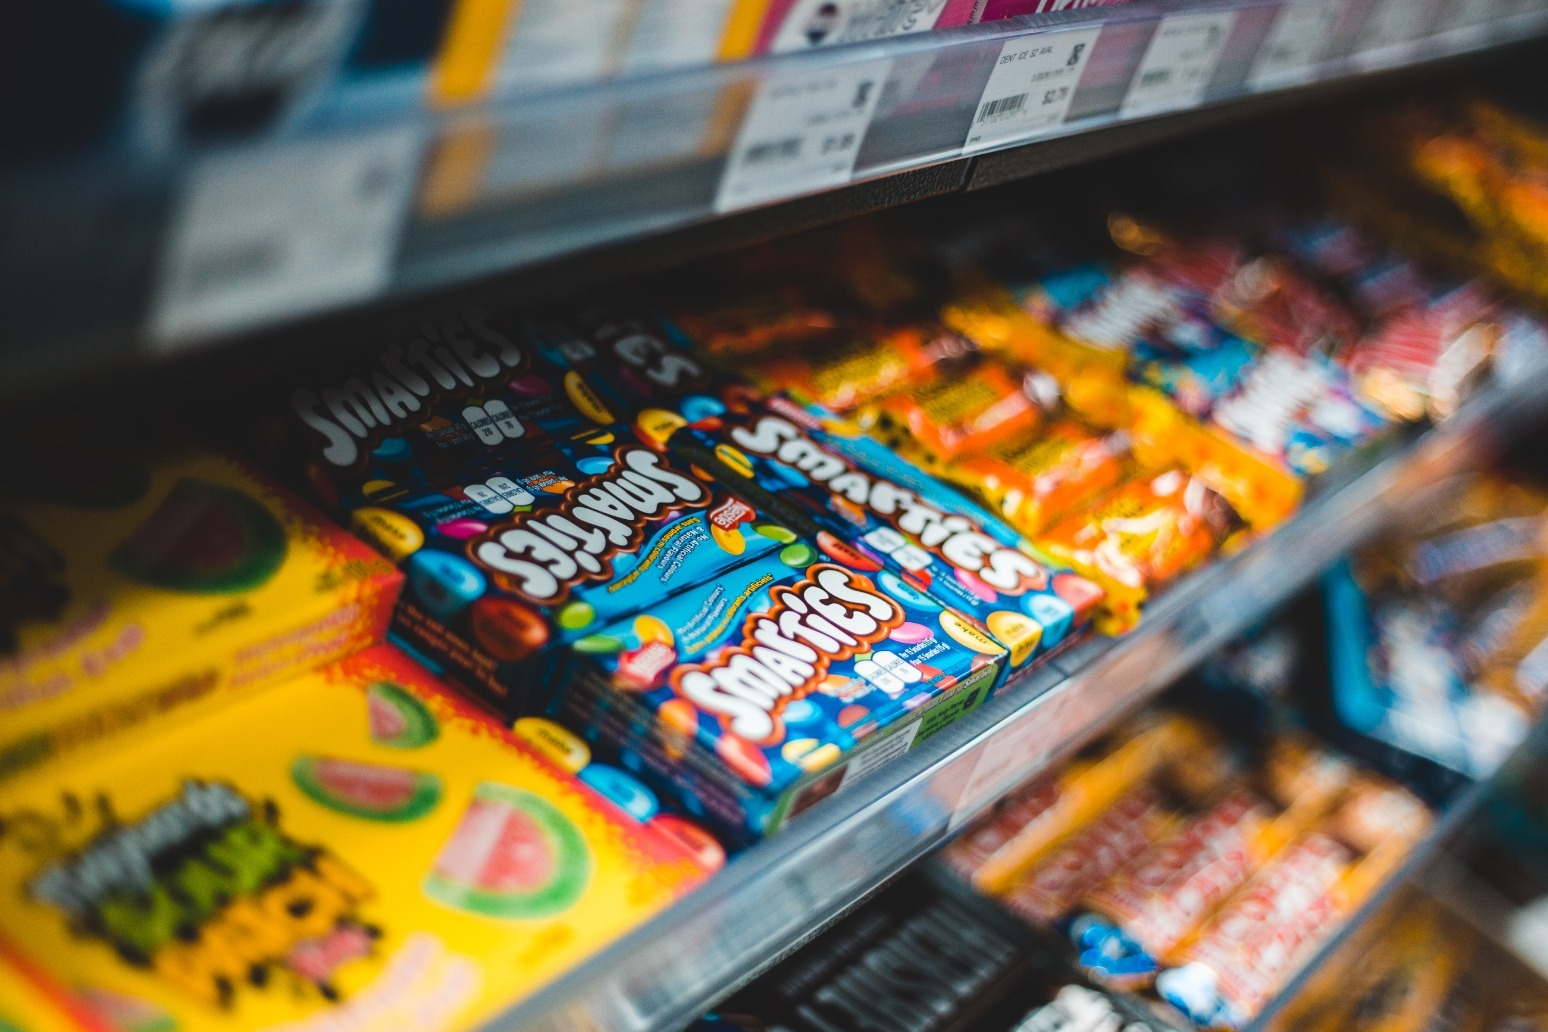 Scientists confirm that removing sweets from checkouts encourages healthy eating